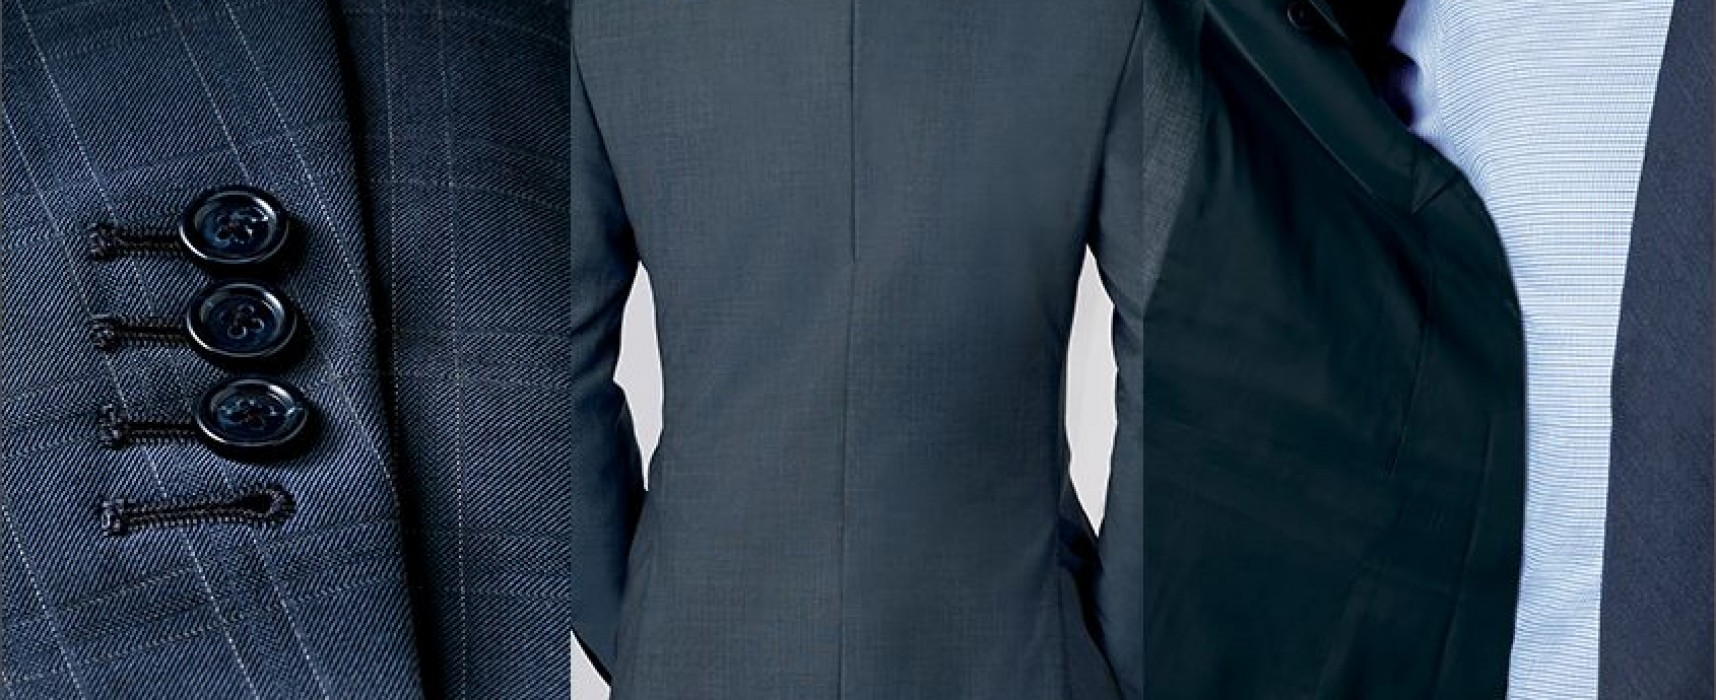 A Man's Guide to Choosing Quality Suits